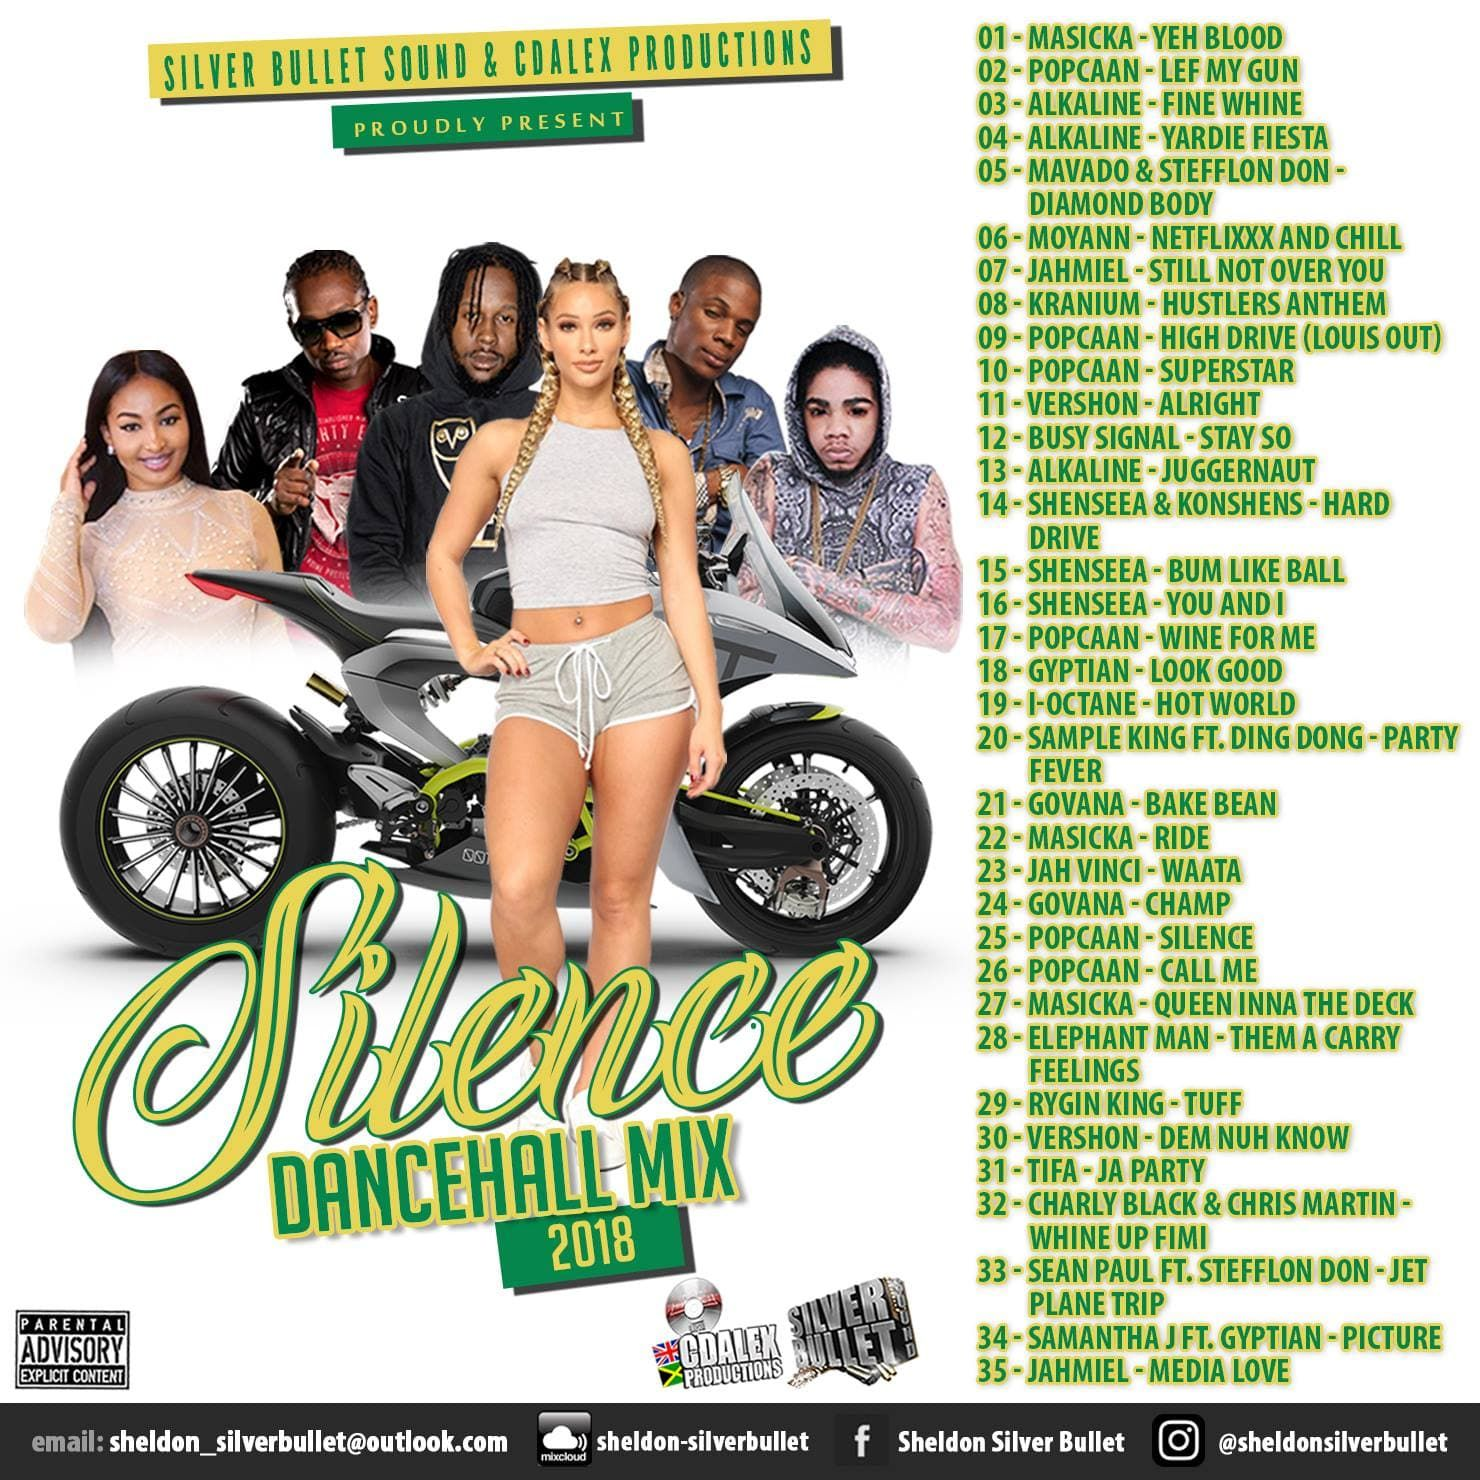 Popcaan - Call Me by Silver Bullet Sound - Silence (Dance Hall Mix